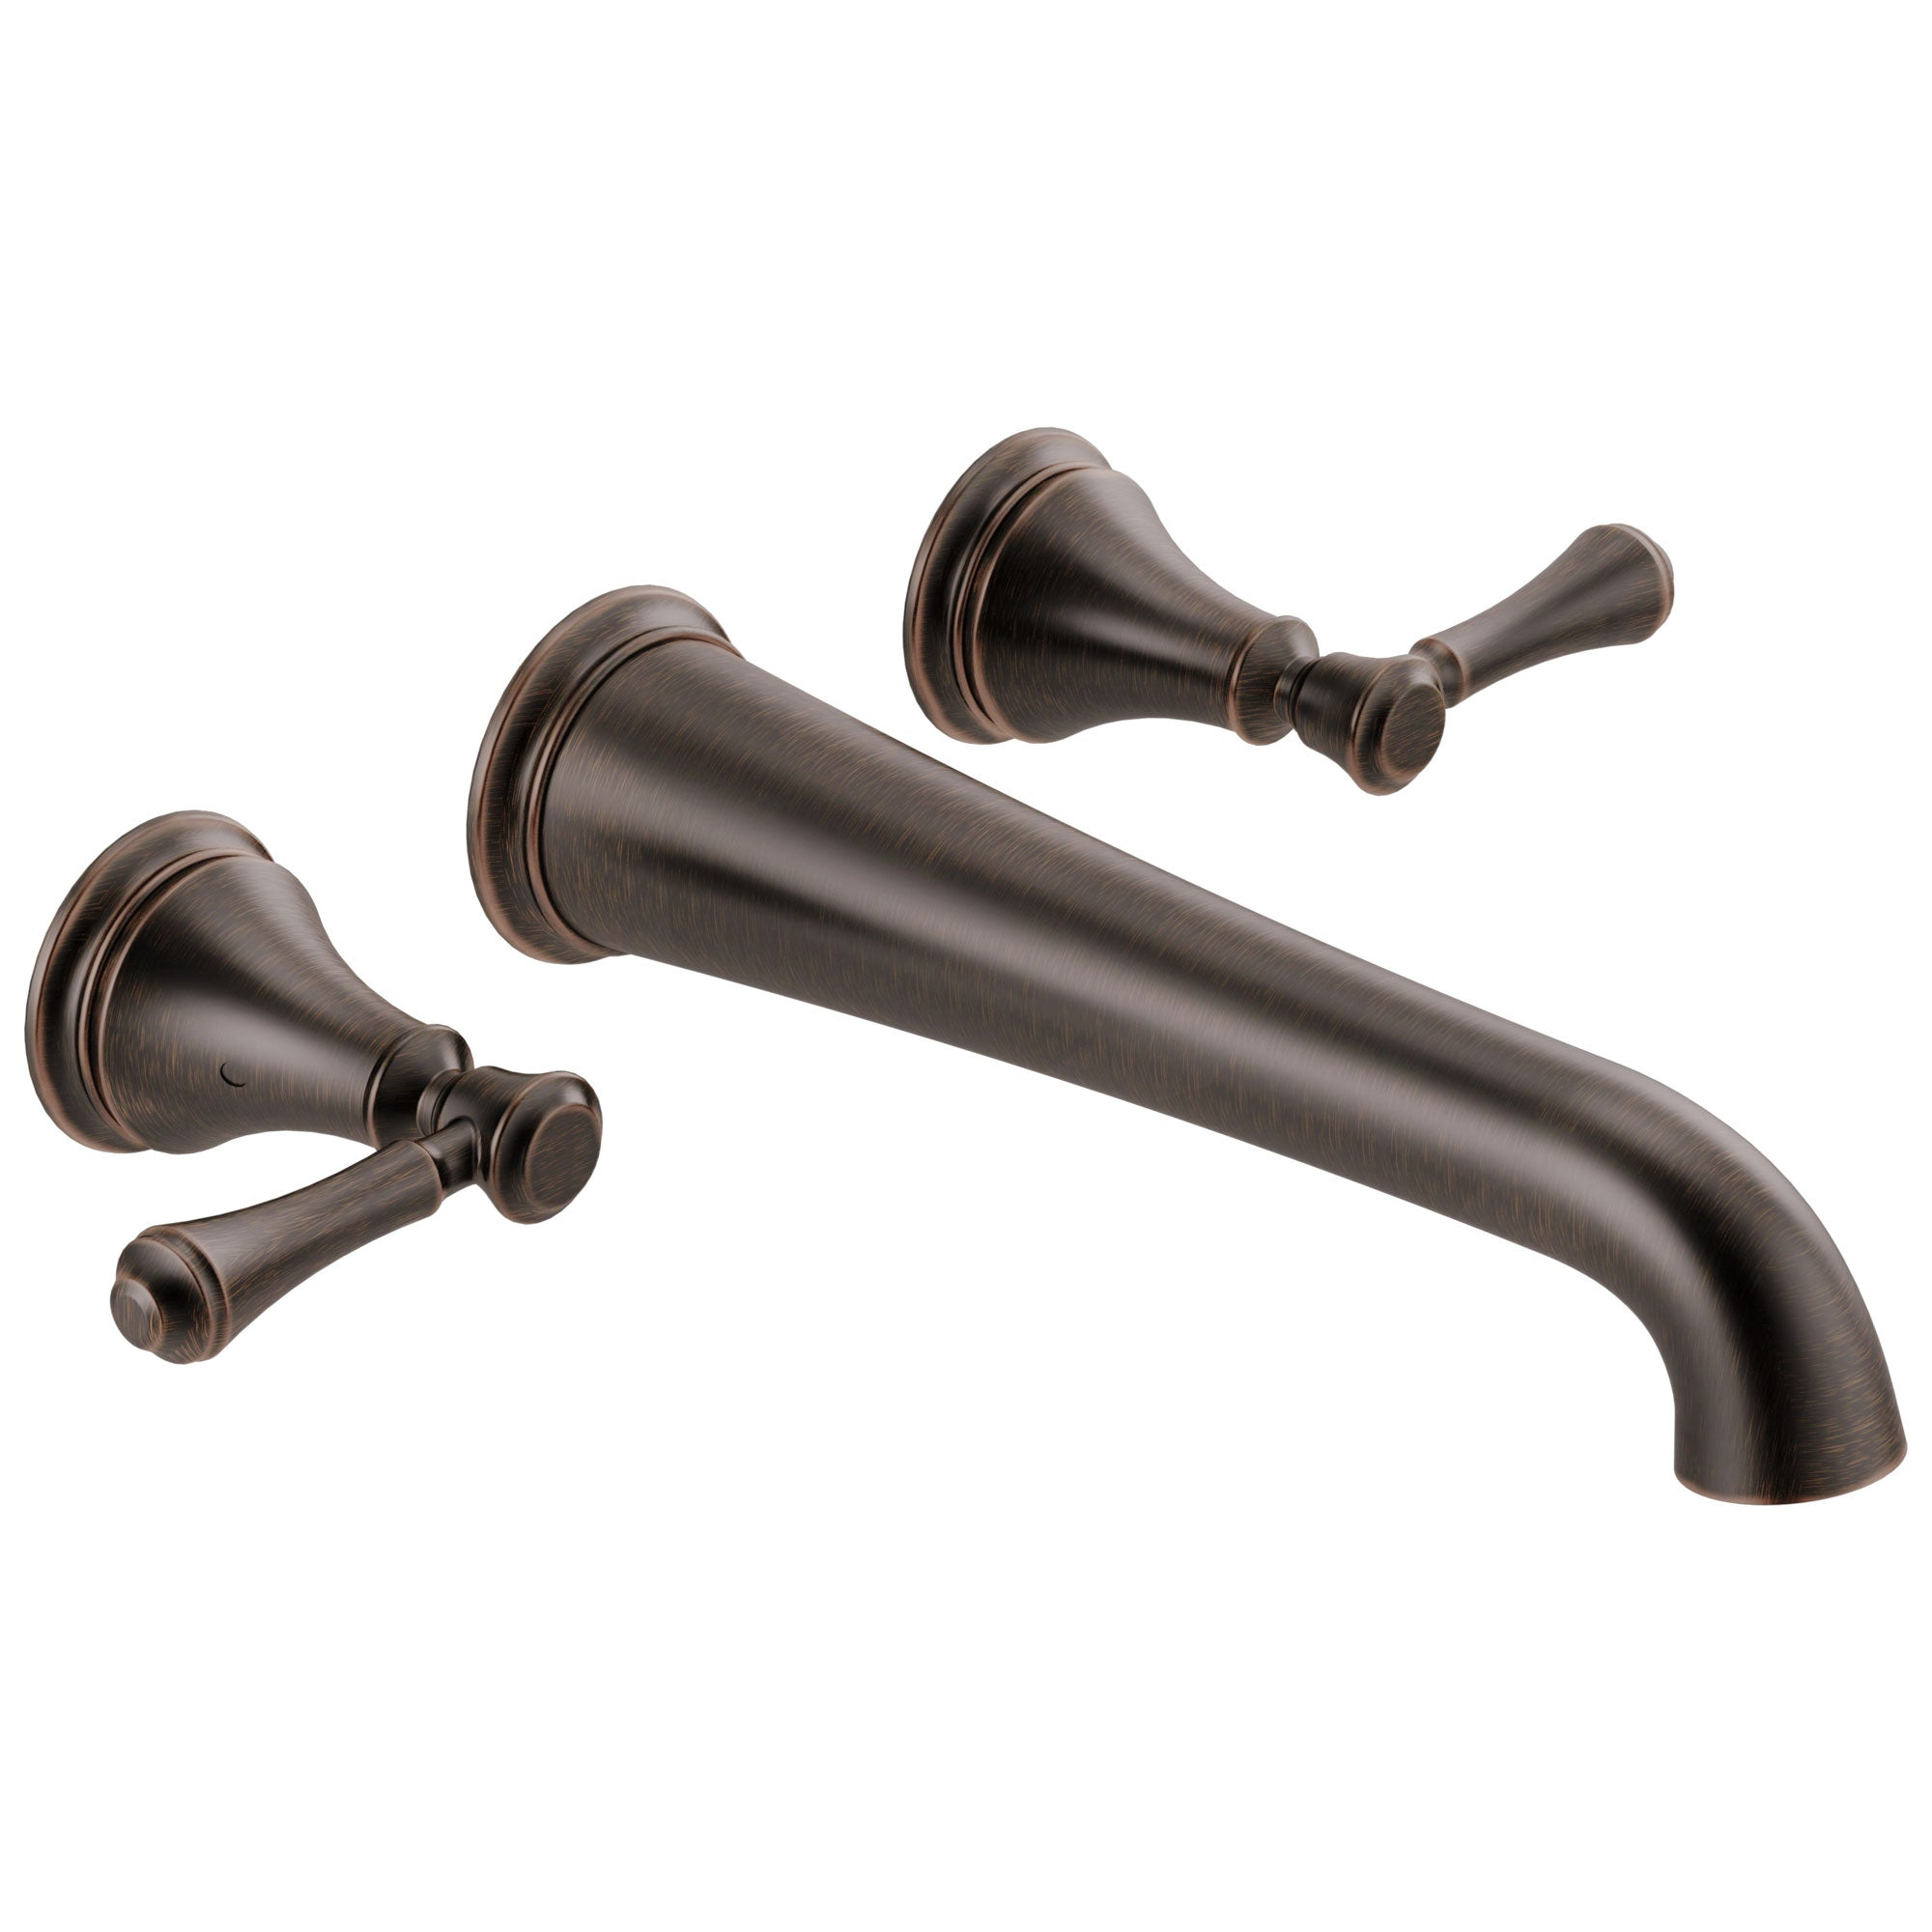 Delta Cassidy Venetian Bronze Finish 2 Handle Wall Mount Tub Filler Faucet Includes Rough-in Valve D3010V